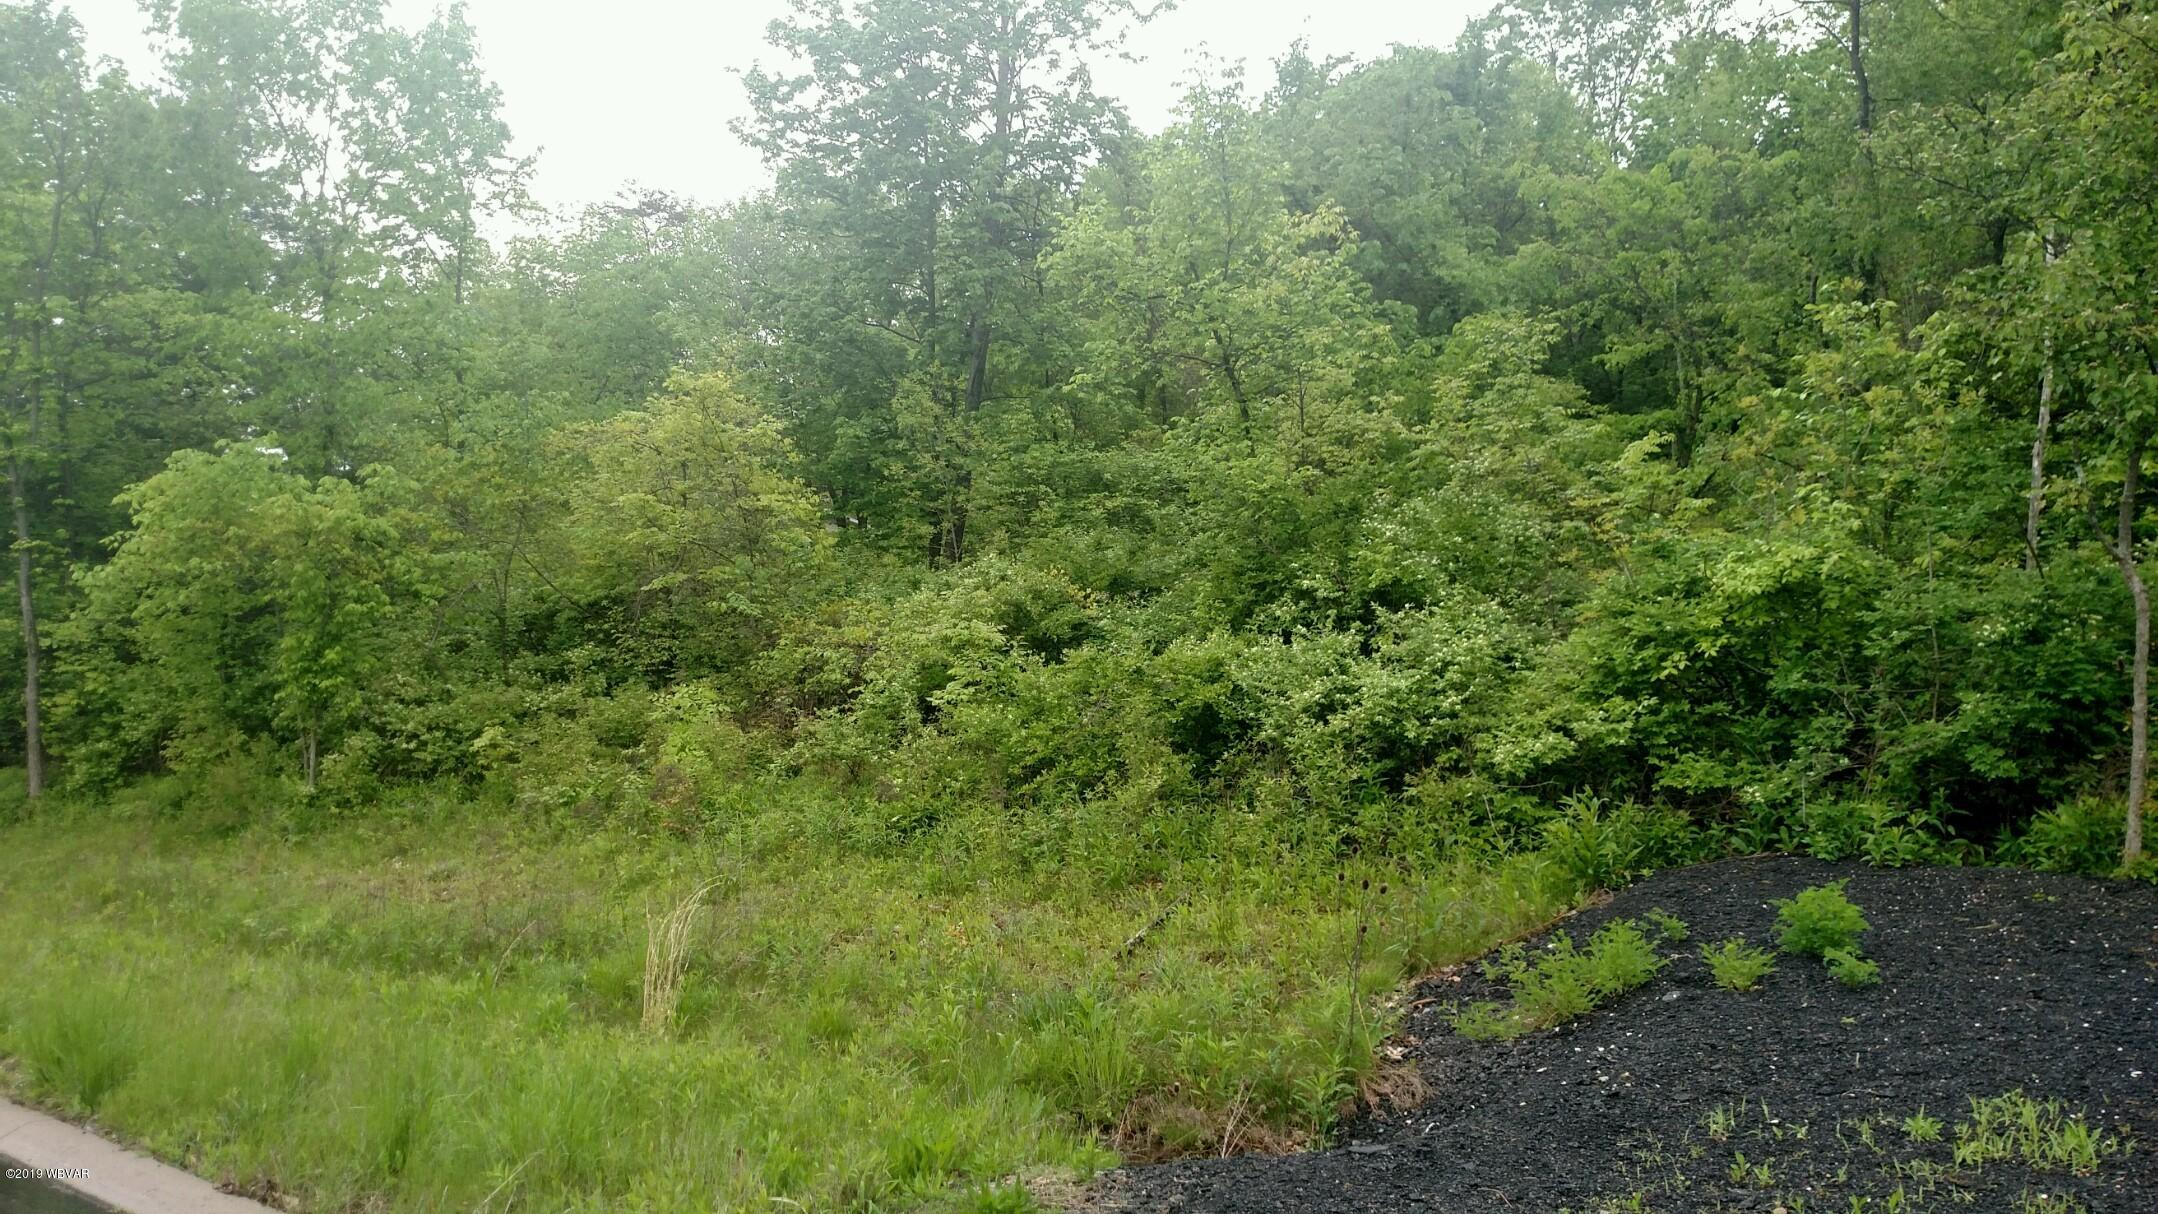 87 CREE DRIVE, Lock Haven, PA 17745, ,Land,For sale,CREE,WB-86398